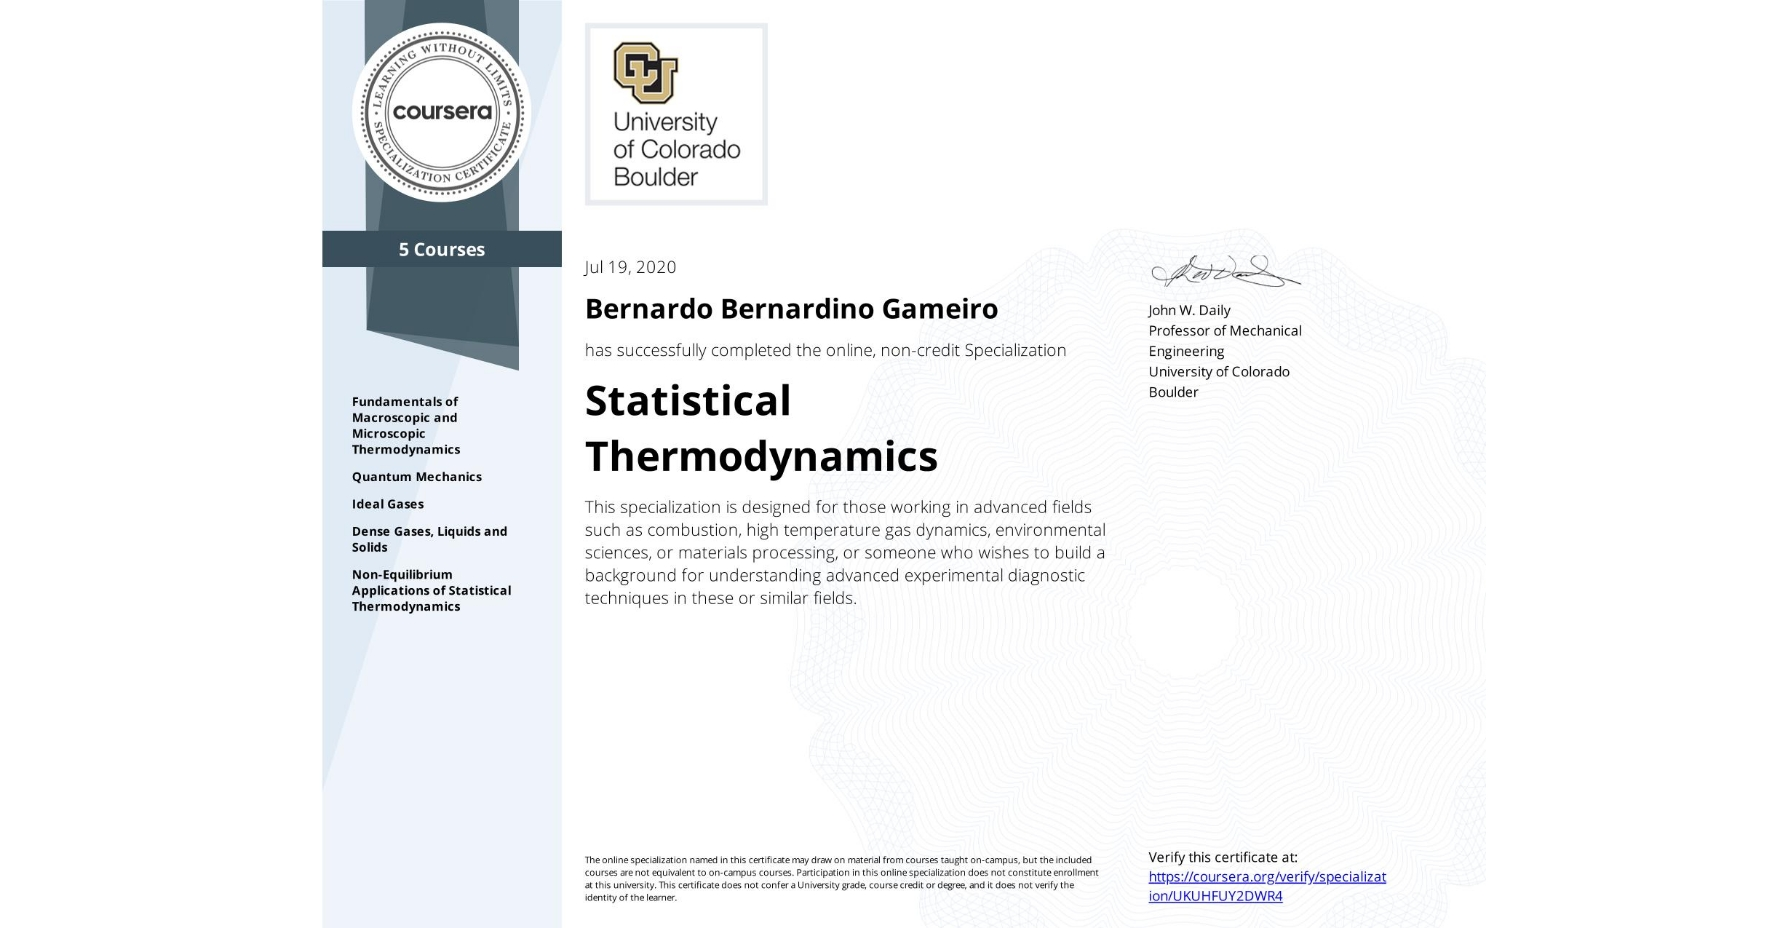 View certificate for Bernardo Bernardino Gameiro, Statistical Thermodynamics, offered through Coursera. This specialization is designed for those working in advanced fields such as combustion, high temperature gas dynamics, environmental sciences, or materials processing, or someone who wishes to build a background for understanding advanced experimental diagnostic techniques in these or similar fields.